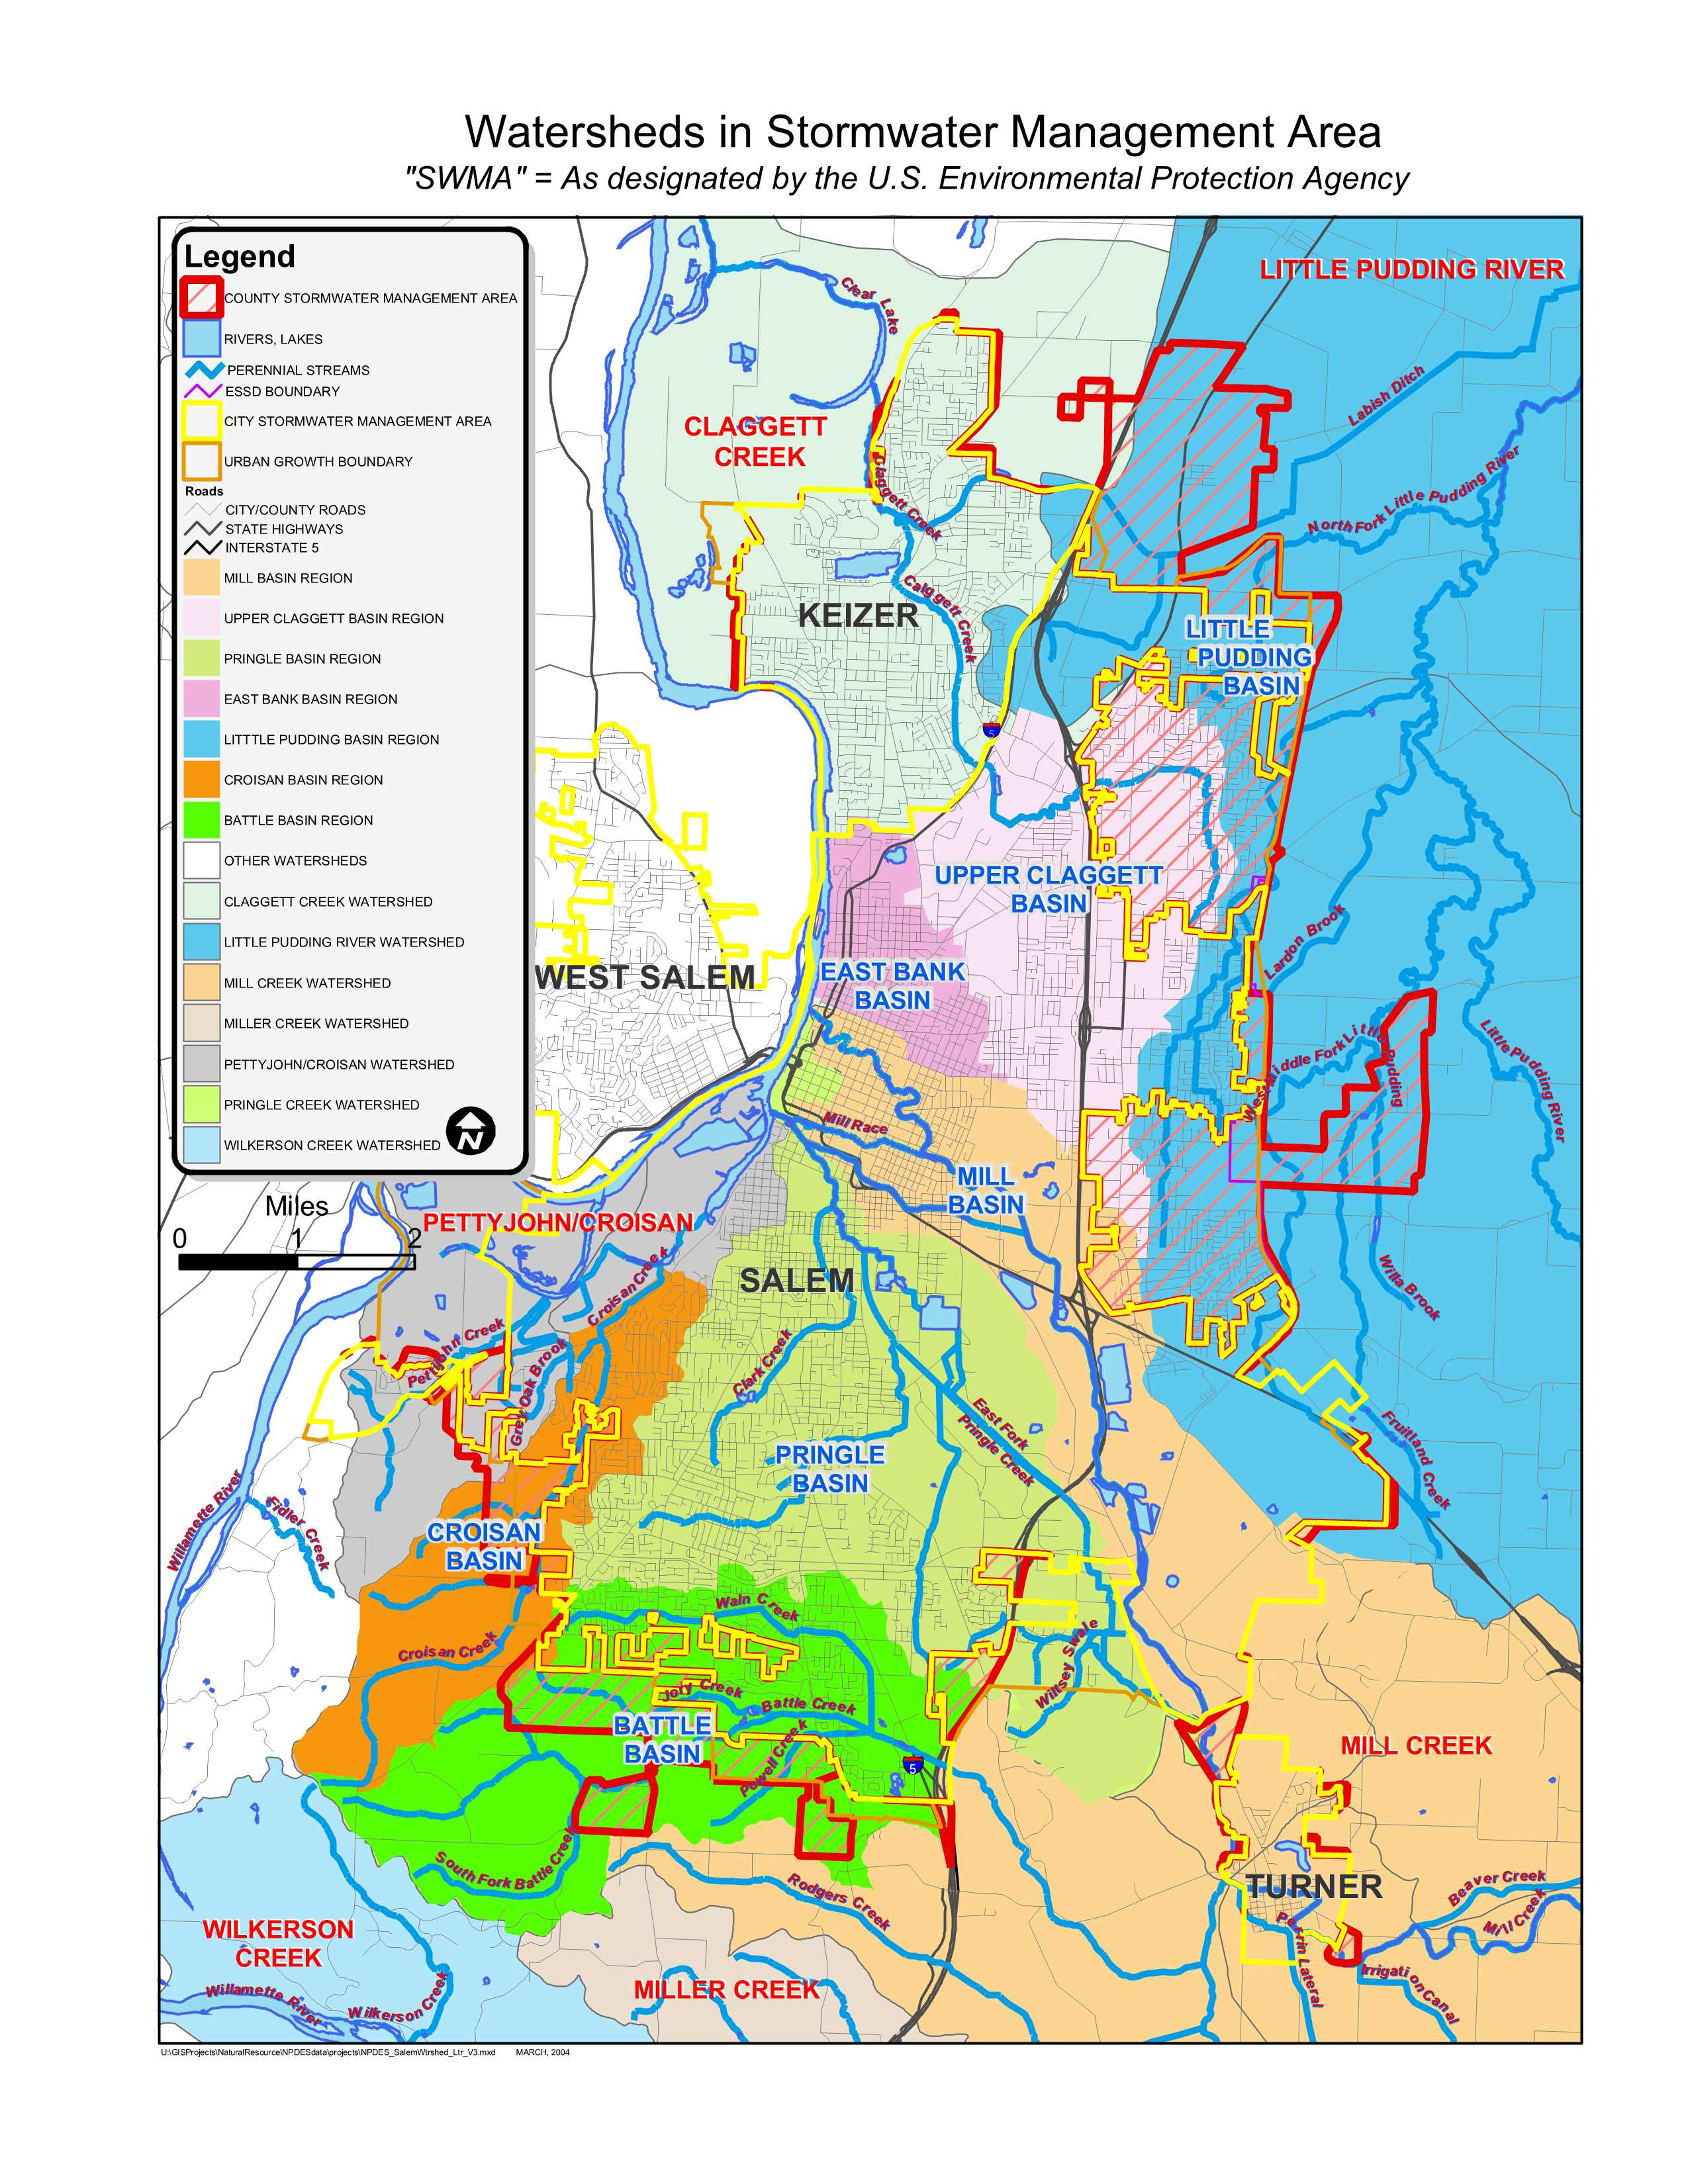 Watersheds in stormwater management area map